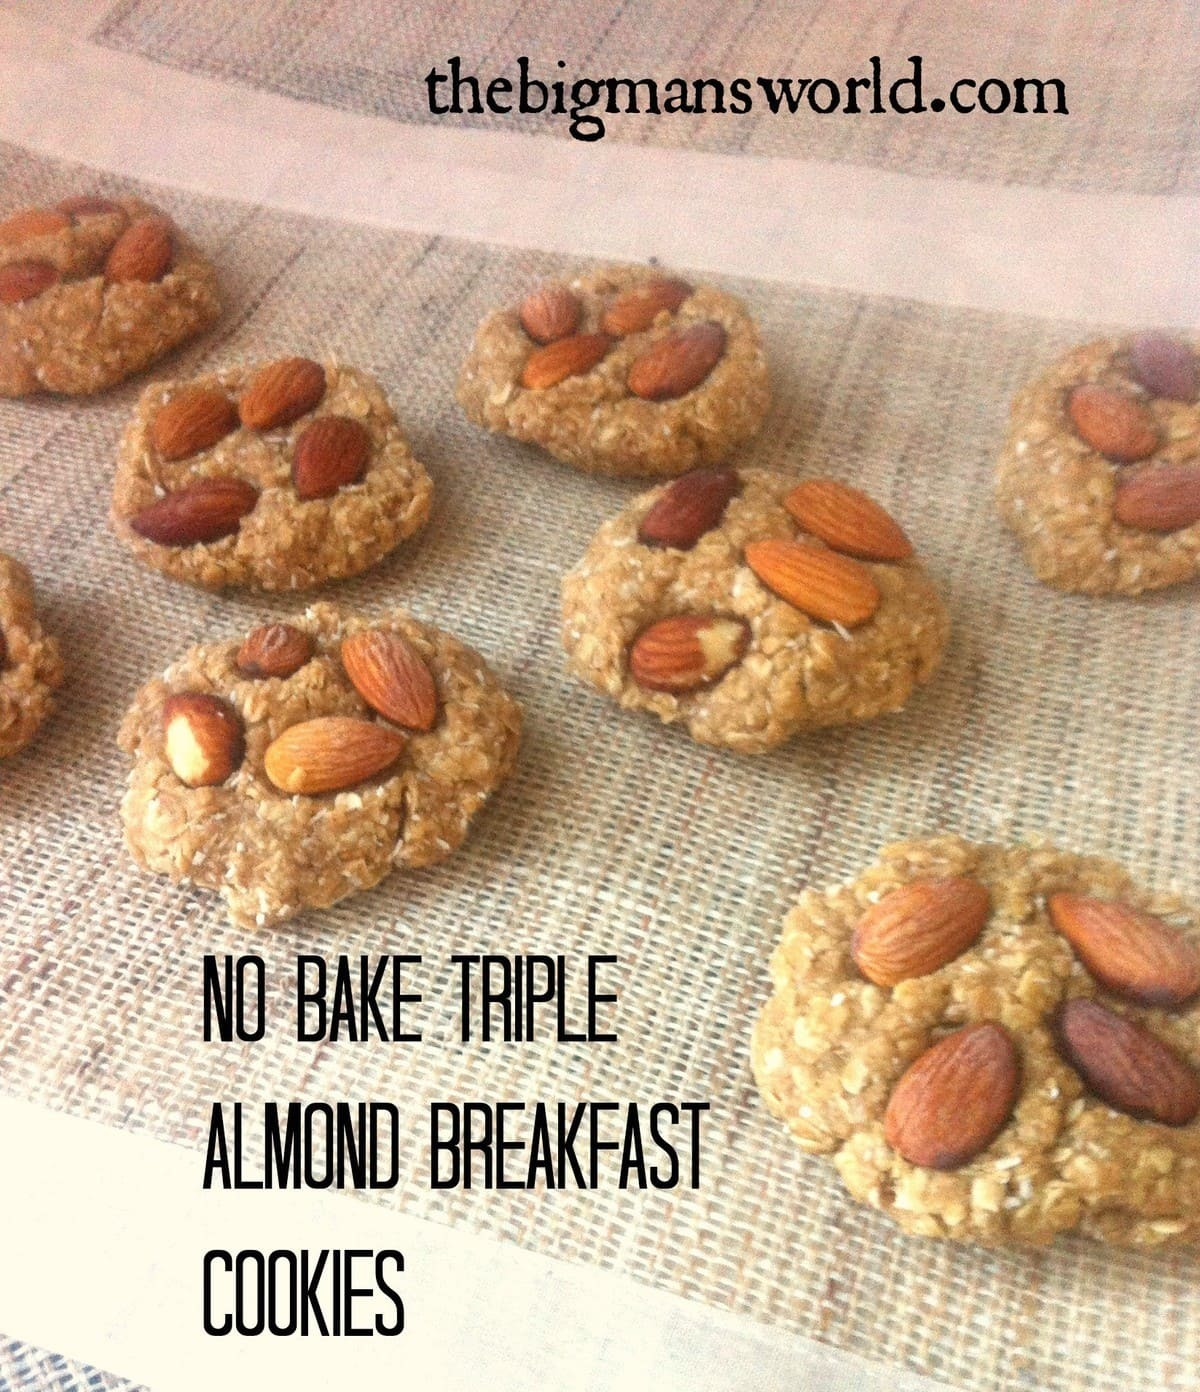 No Bake Triple Almond Breakfast Cookies